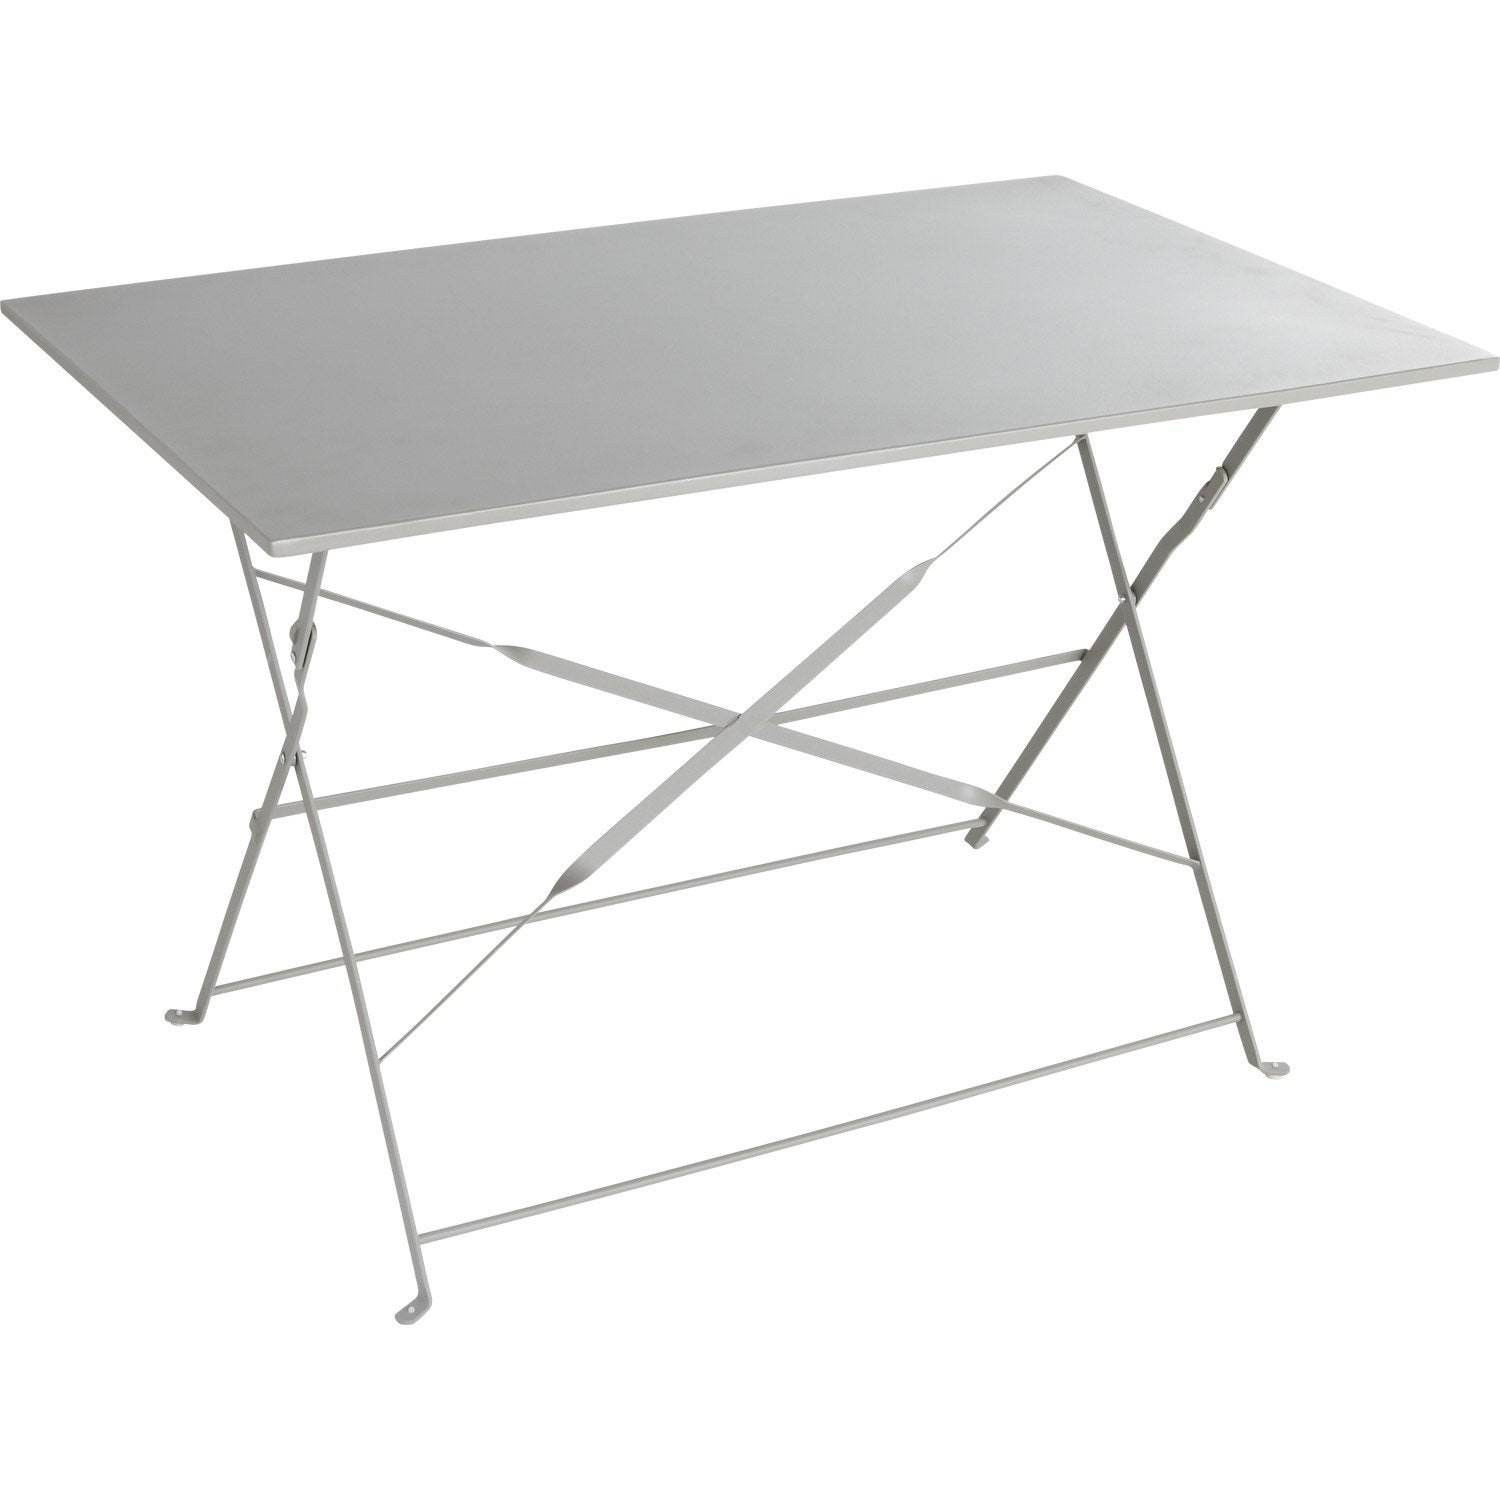 Table de jardin naterial flore rectangulaire gris 4 for Table de jardin chez castorama